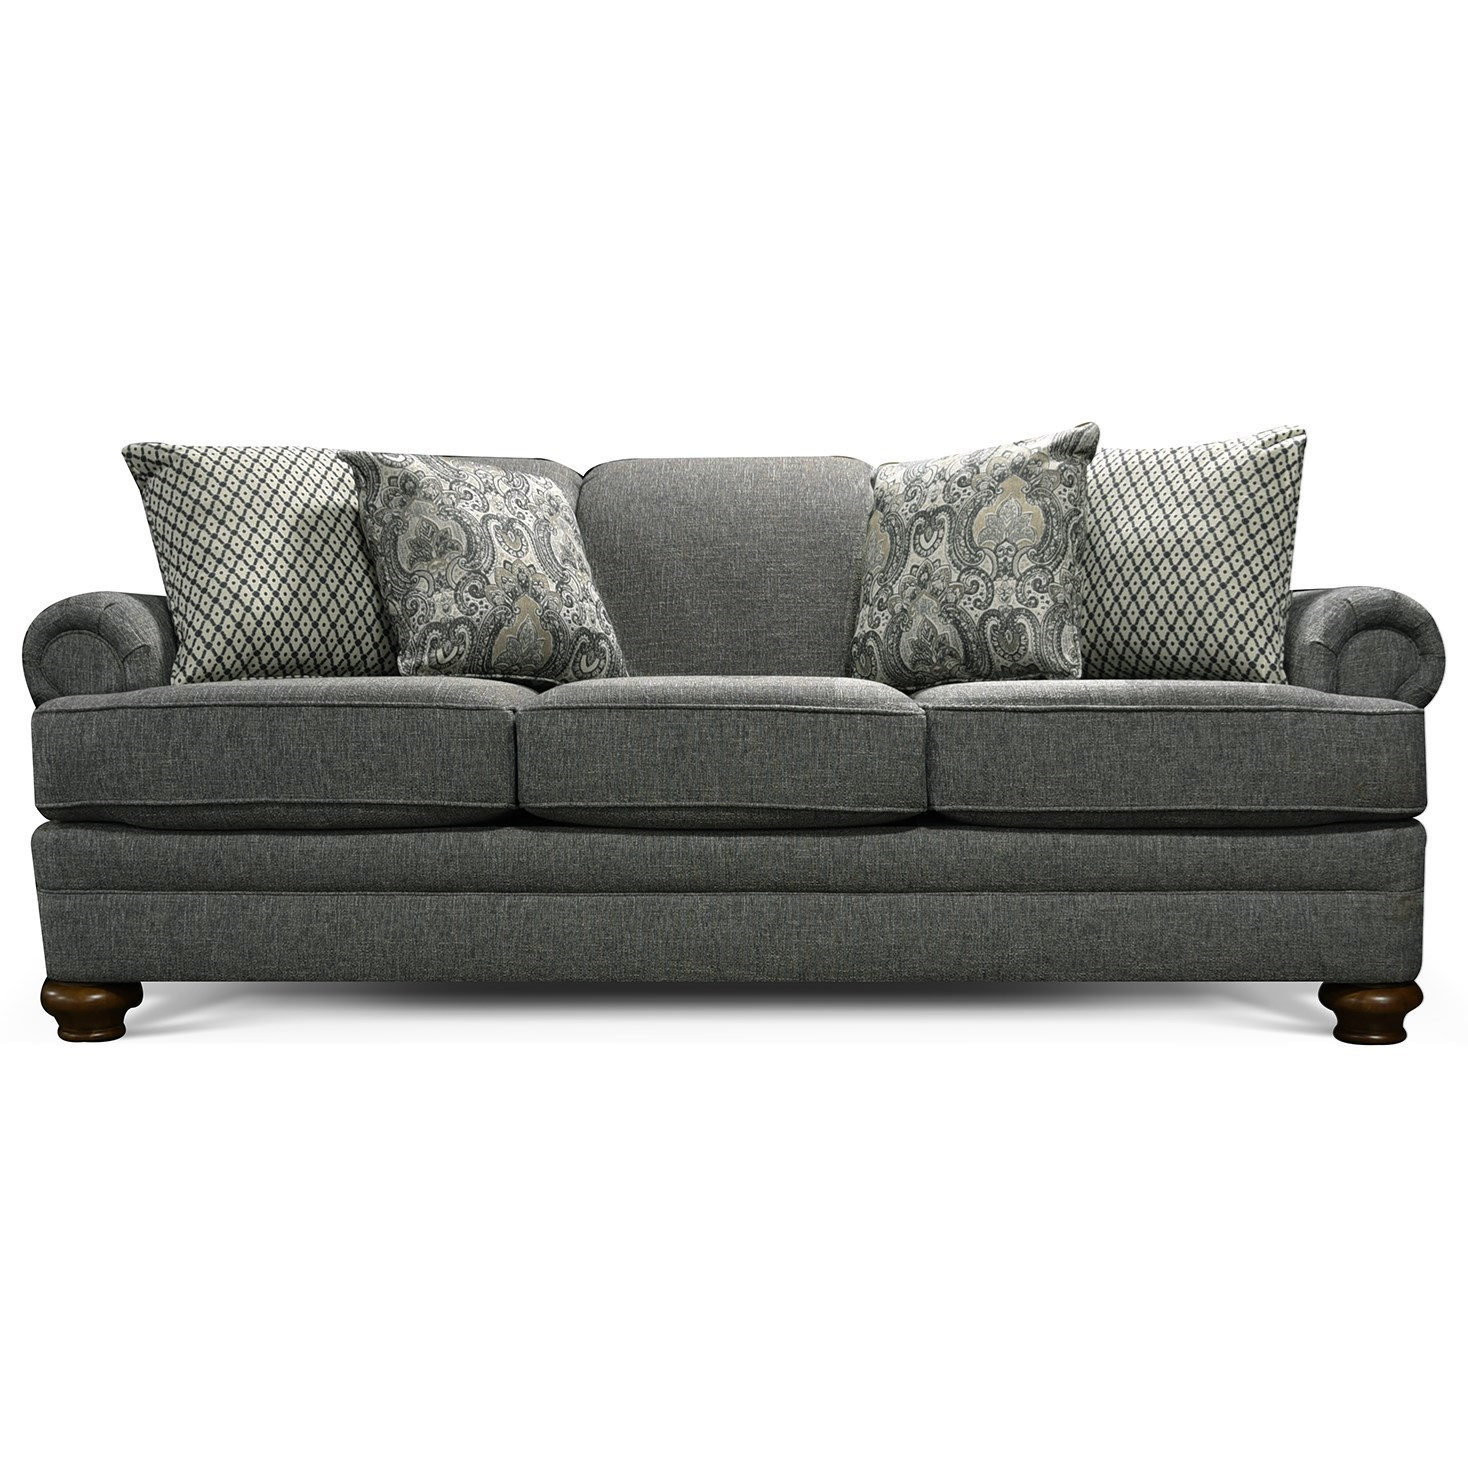 V5Q0 Sofa with Traditional Style by Alexvale at Northeast Factory Direct